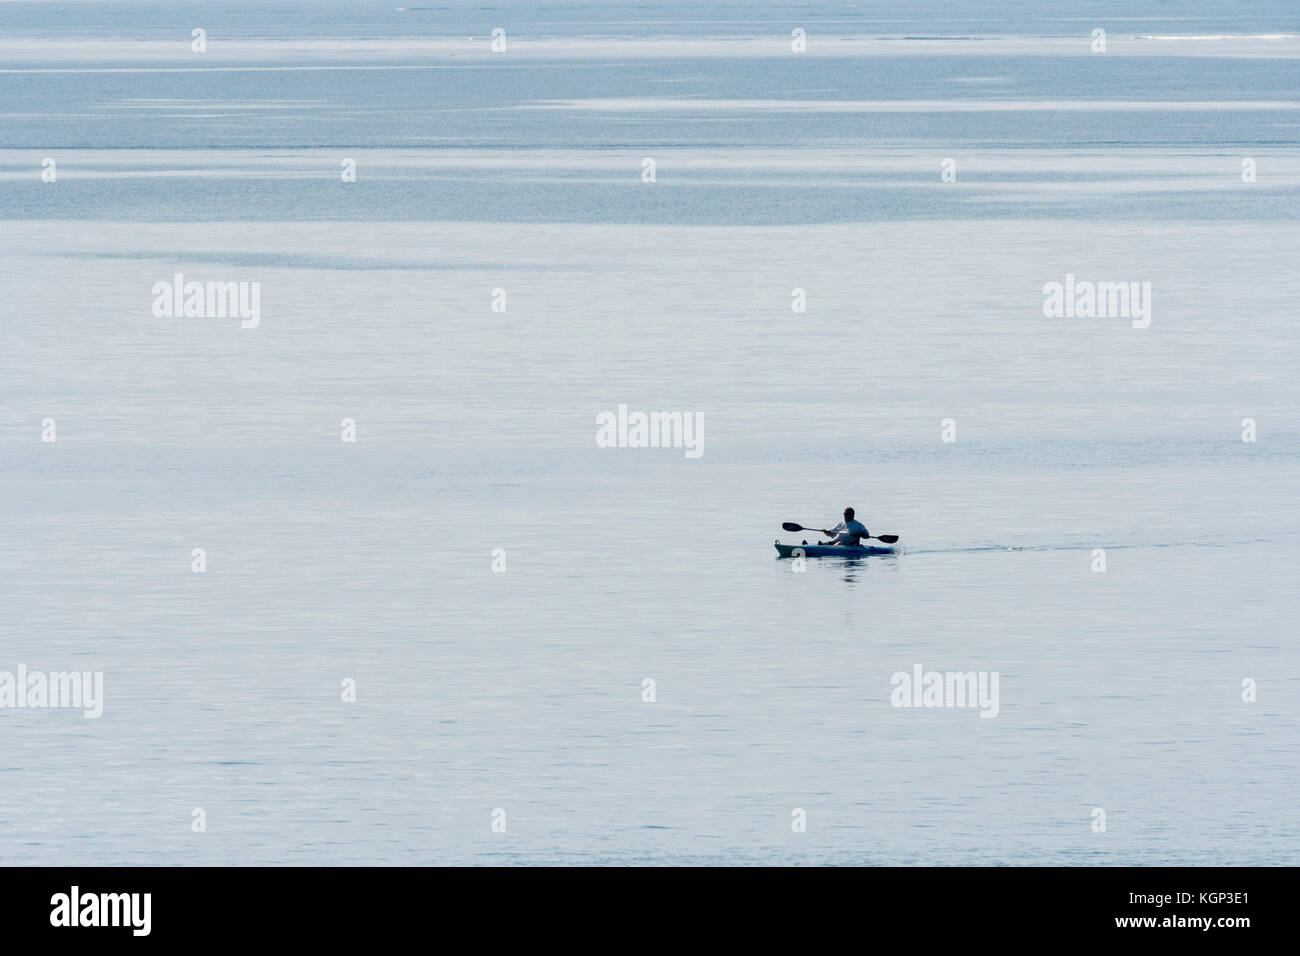 Lone sea angler paddling sea kayak silhouetted against the water. Line fishing for mackerel and similar in shallow - Stock Image